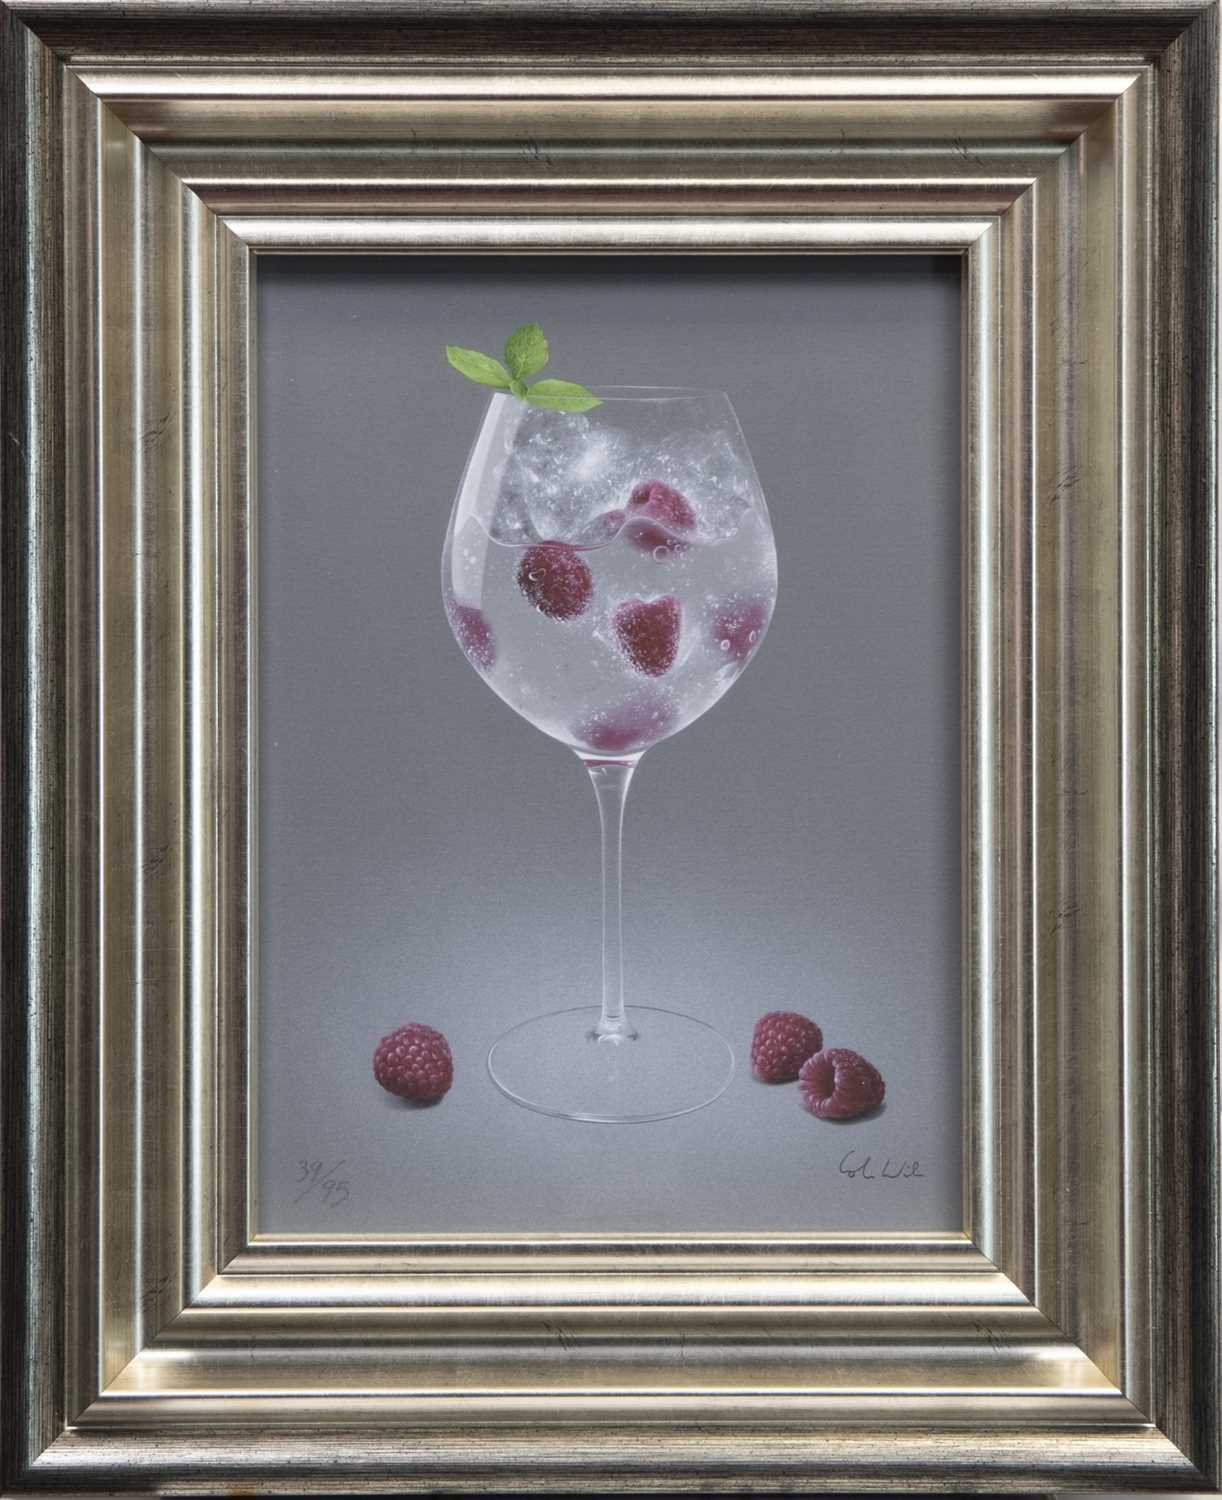 Lot 150 - RASPBERRIES AND TONIC, A GICLEE PRINT BY COLIN WILSON